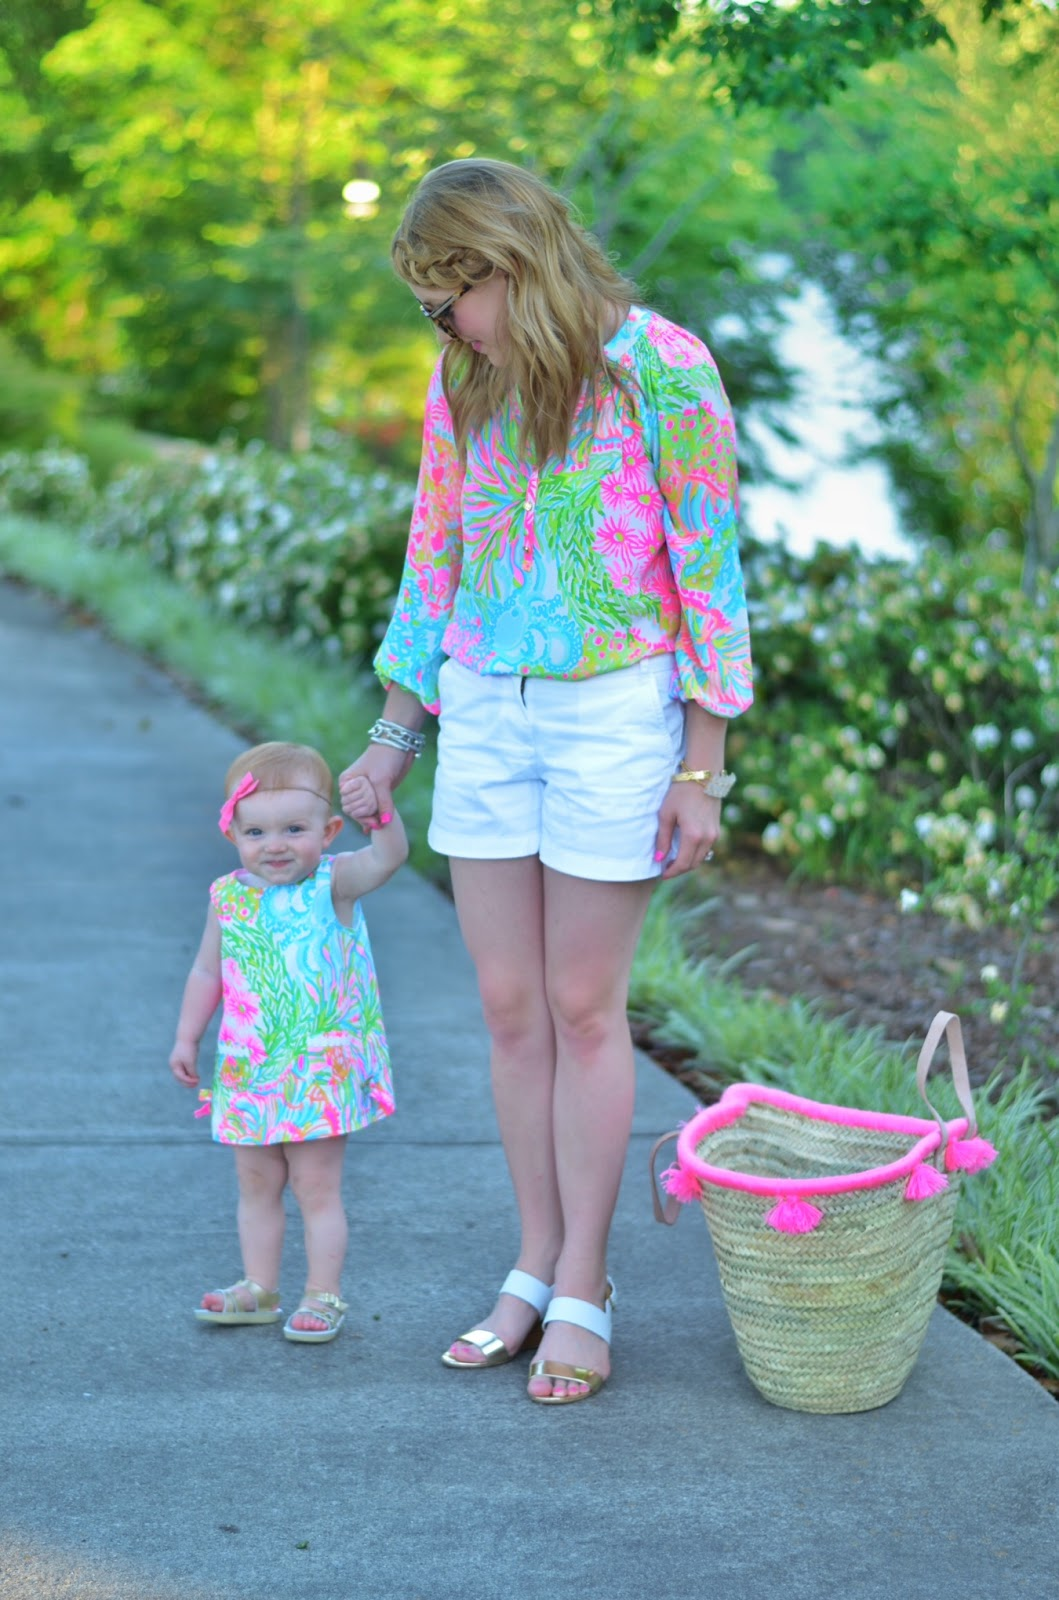 Matching in Lilly Pulitzer